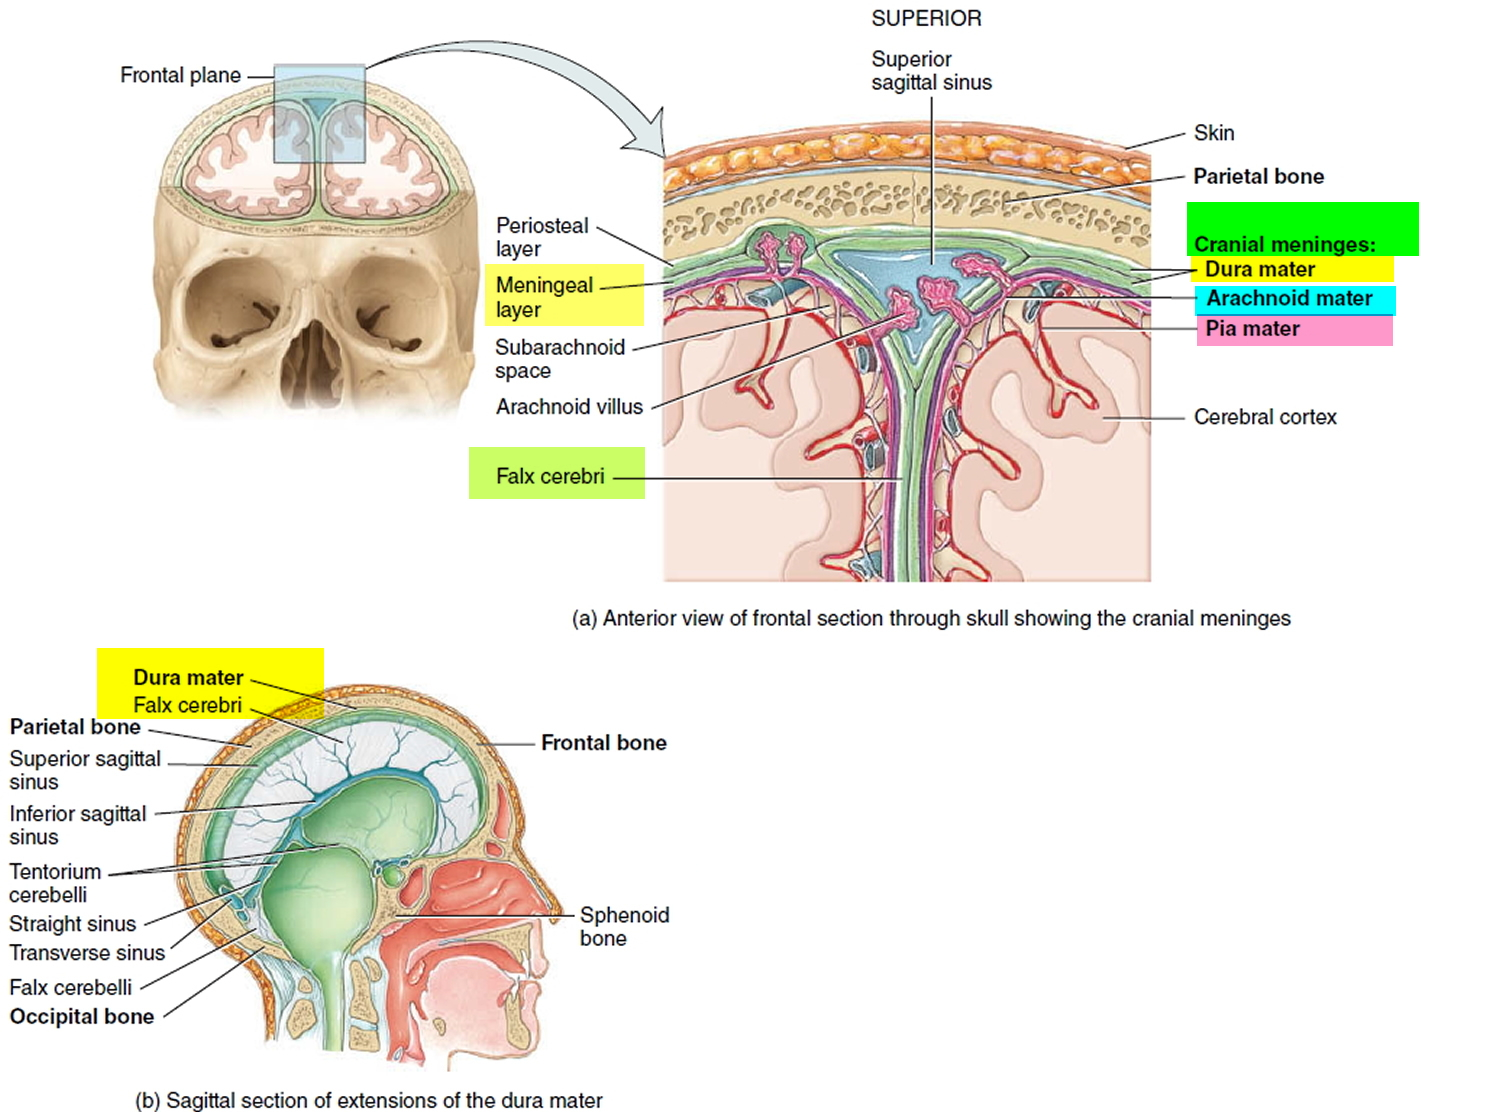 Meningioma Brain Tumor - Causes, Symptoms, Survival Rate, Treatment